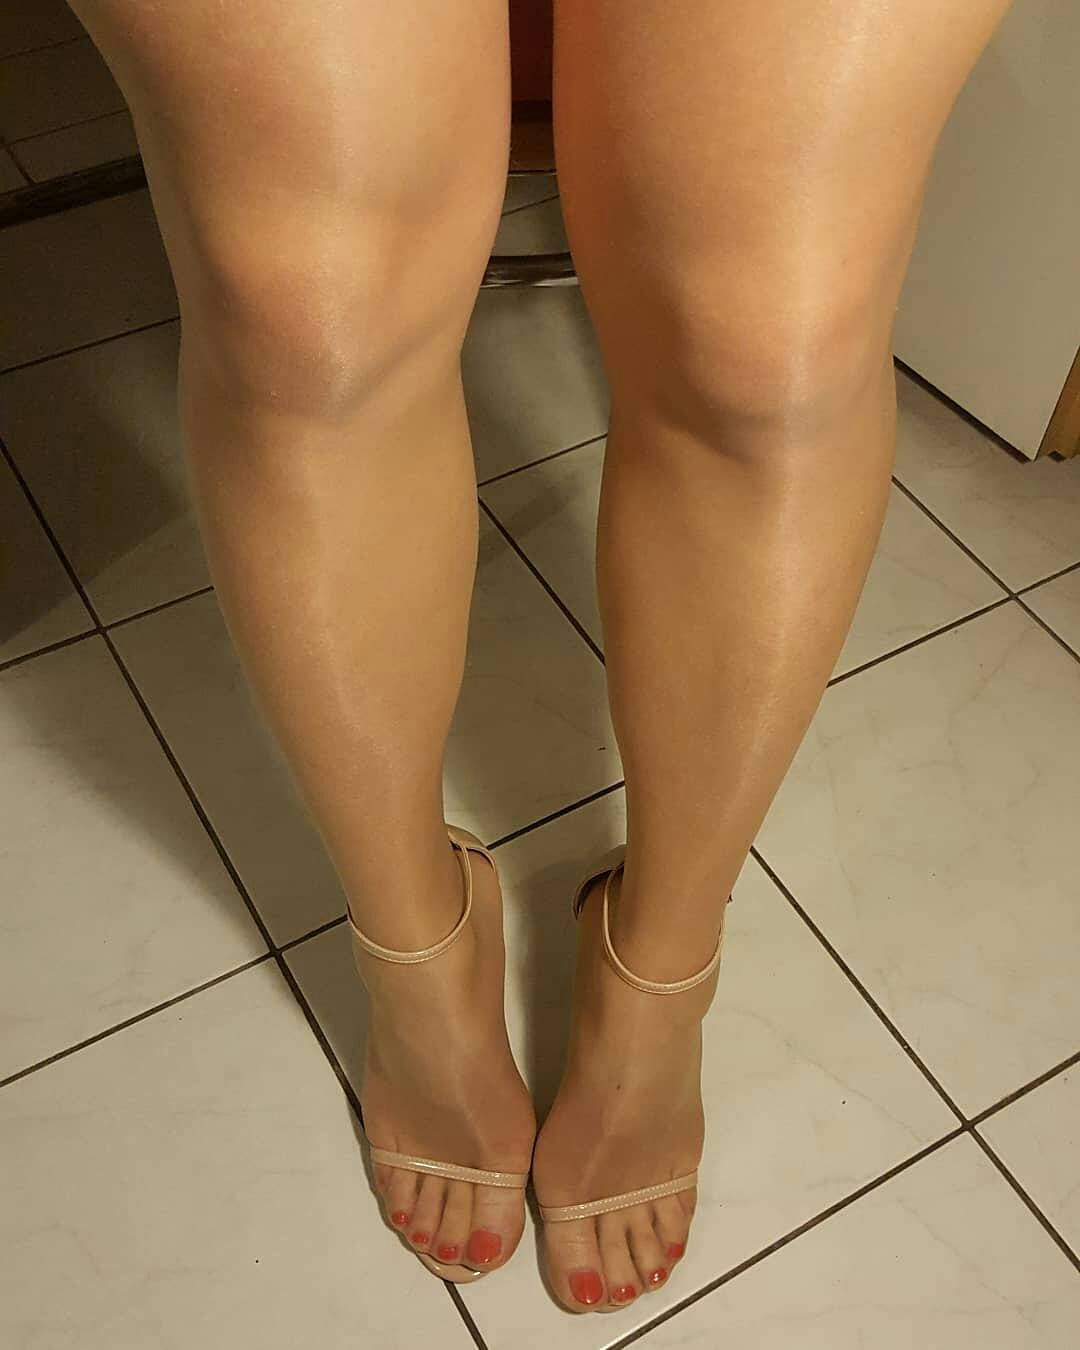 nylons and sandals